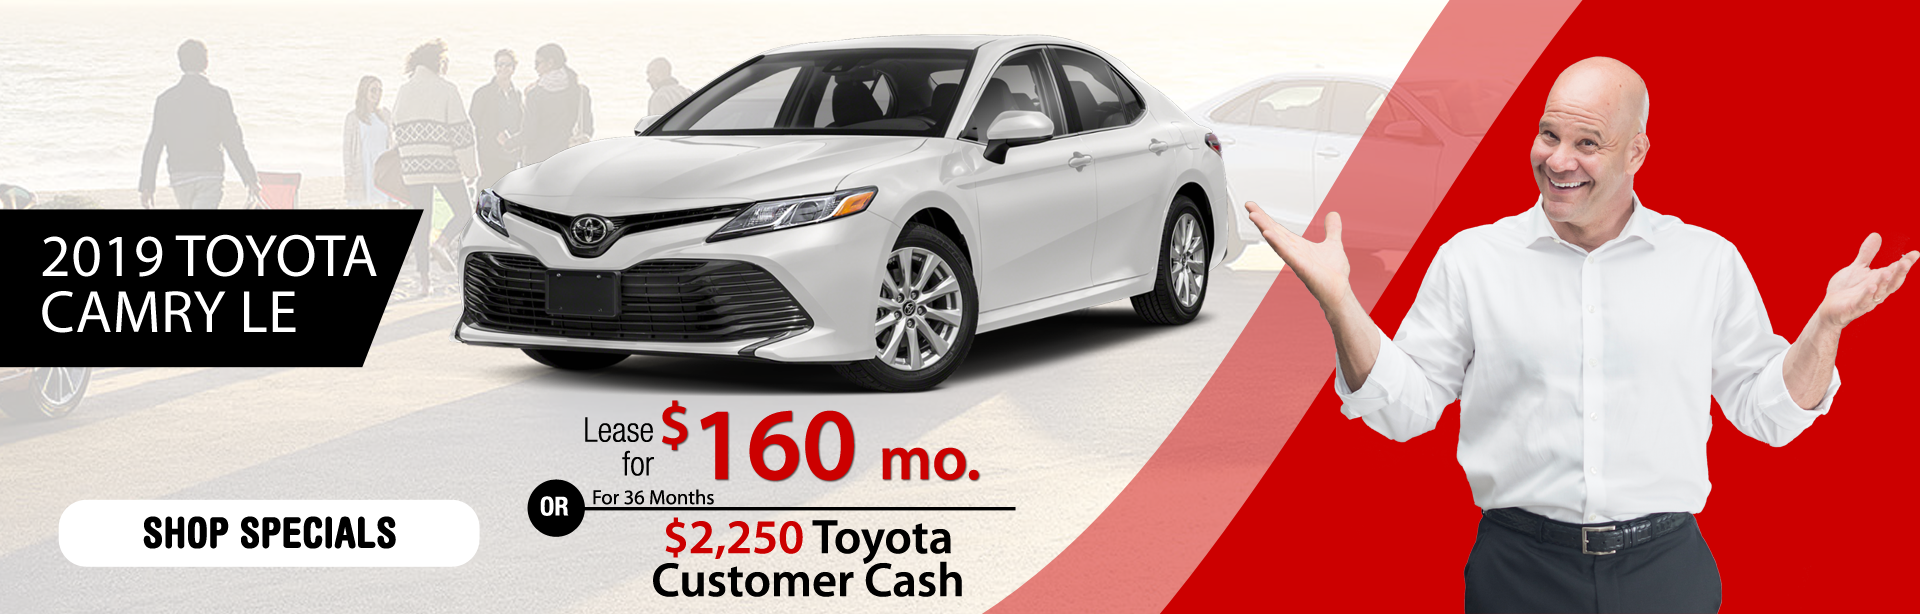 Toyota Camry Special in North Kingstown, Rhode Island